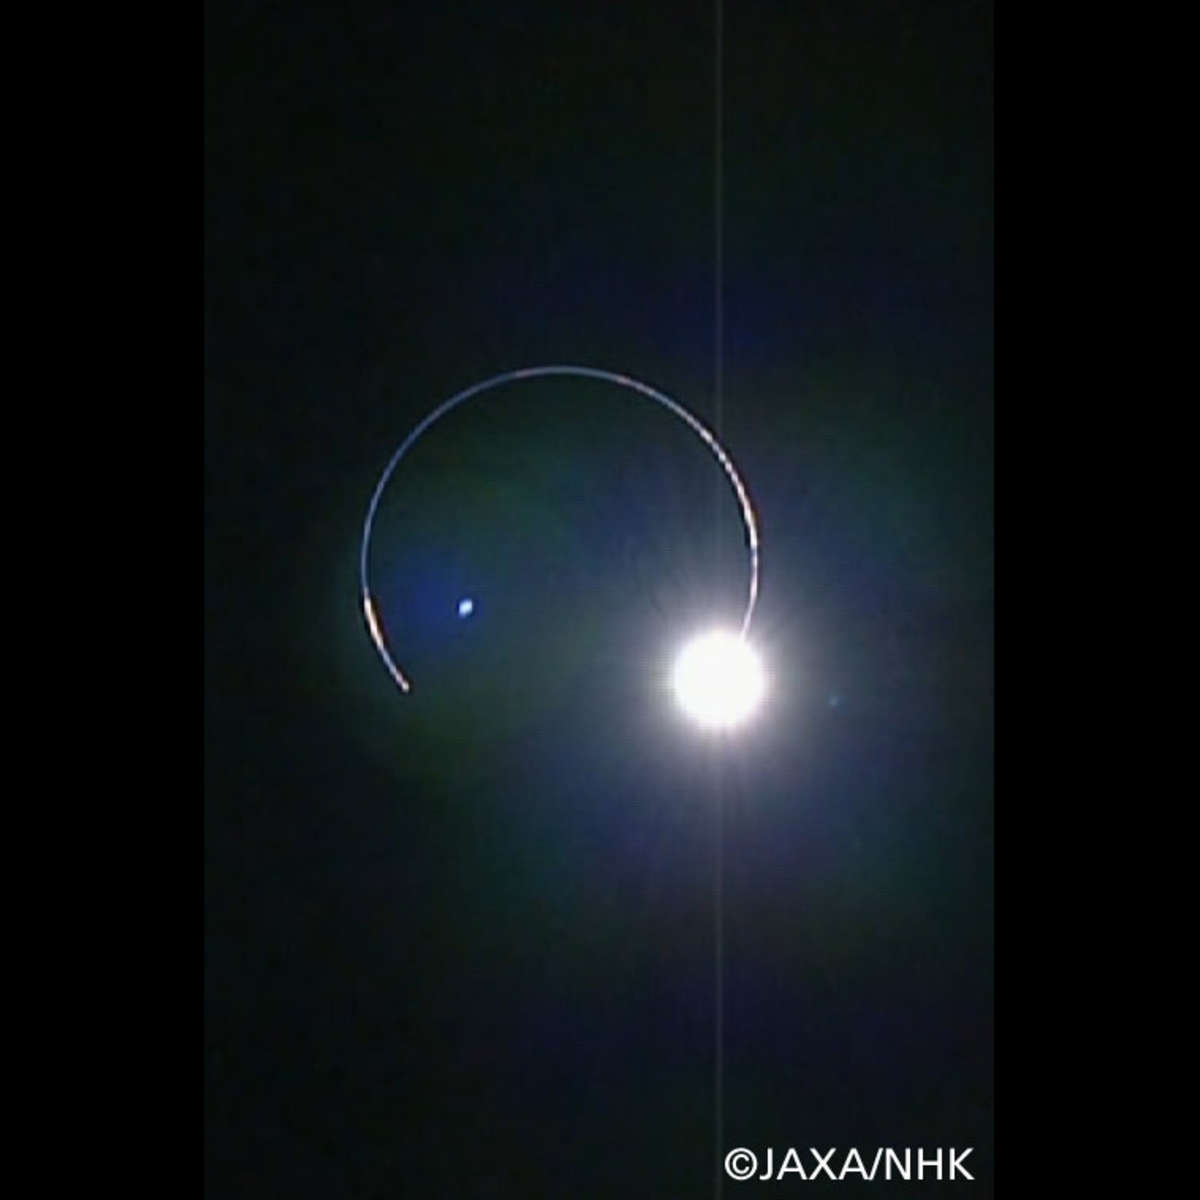 A lunar eclipse… seen from the Moon! The Japanese lunar satellite captured this breathtaking image of the Earth blocking the Sun, with our atmosphere lit up in a ring around it. Credit: JAXA/NHK